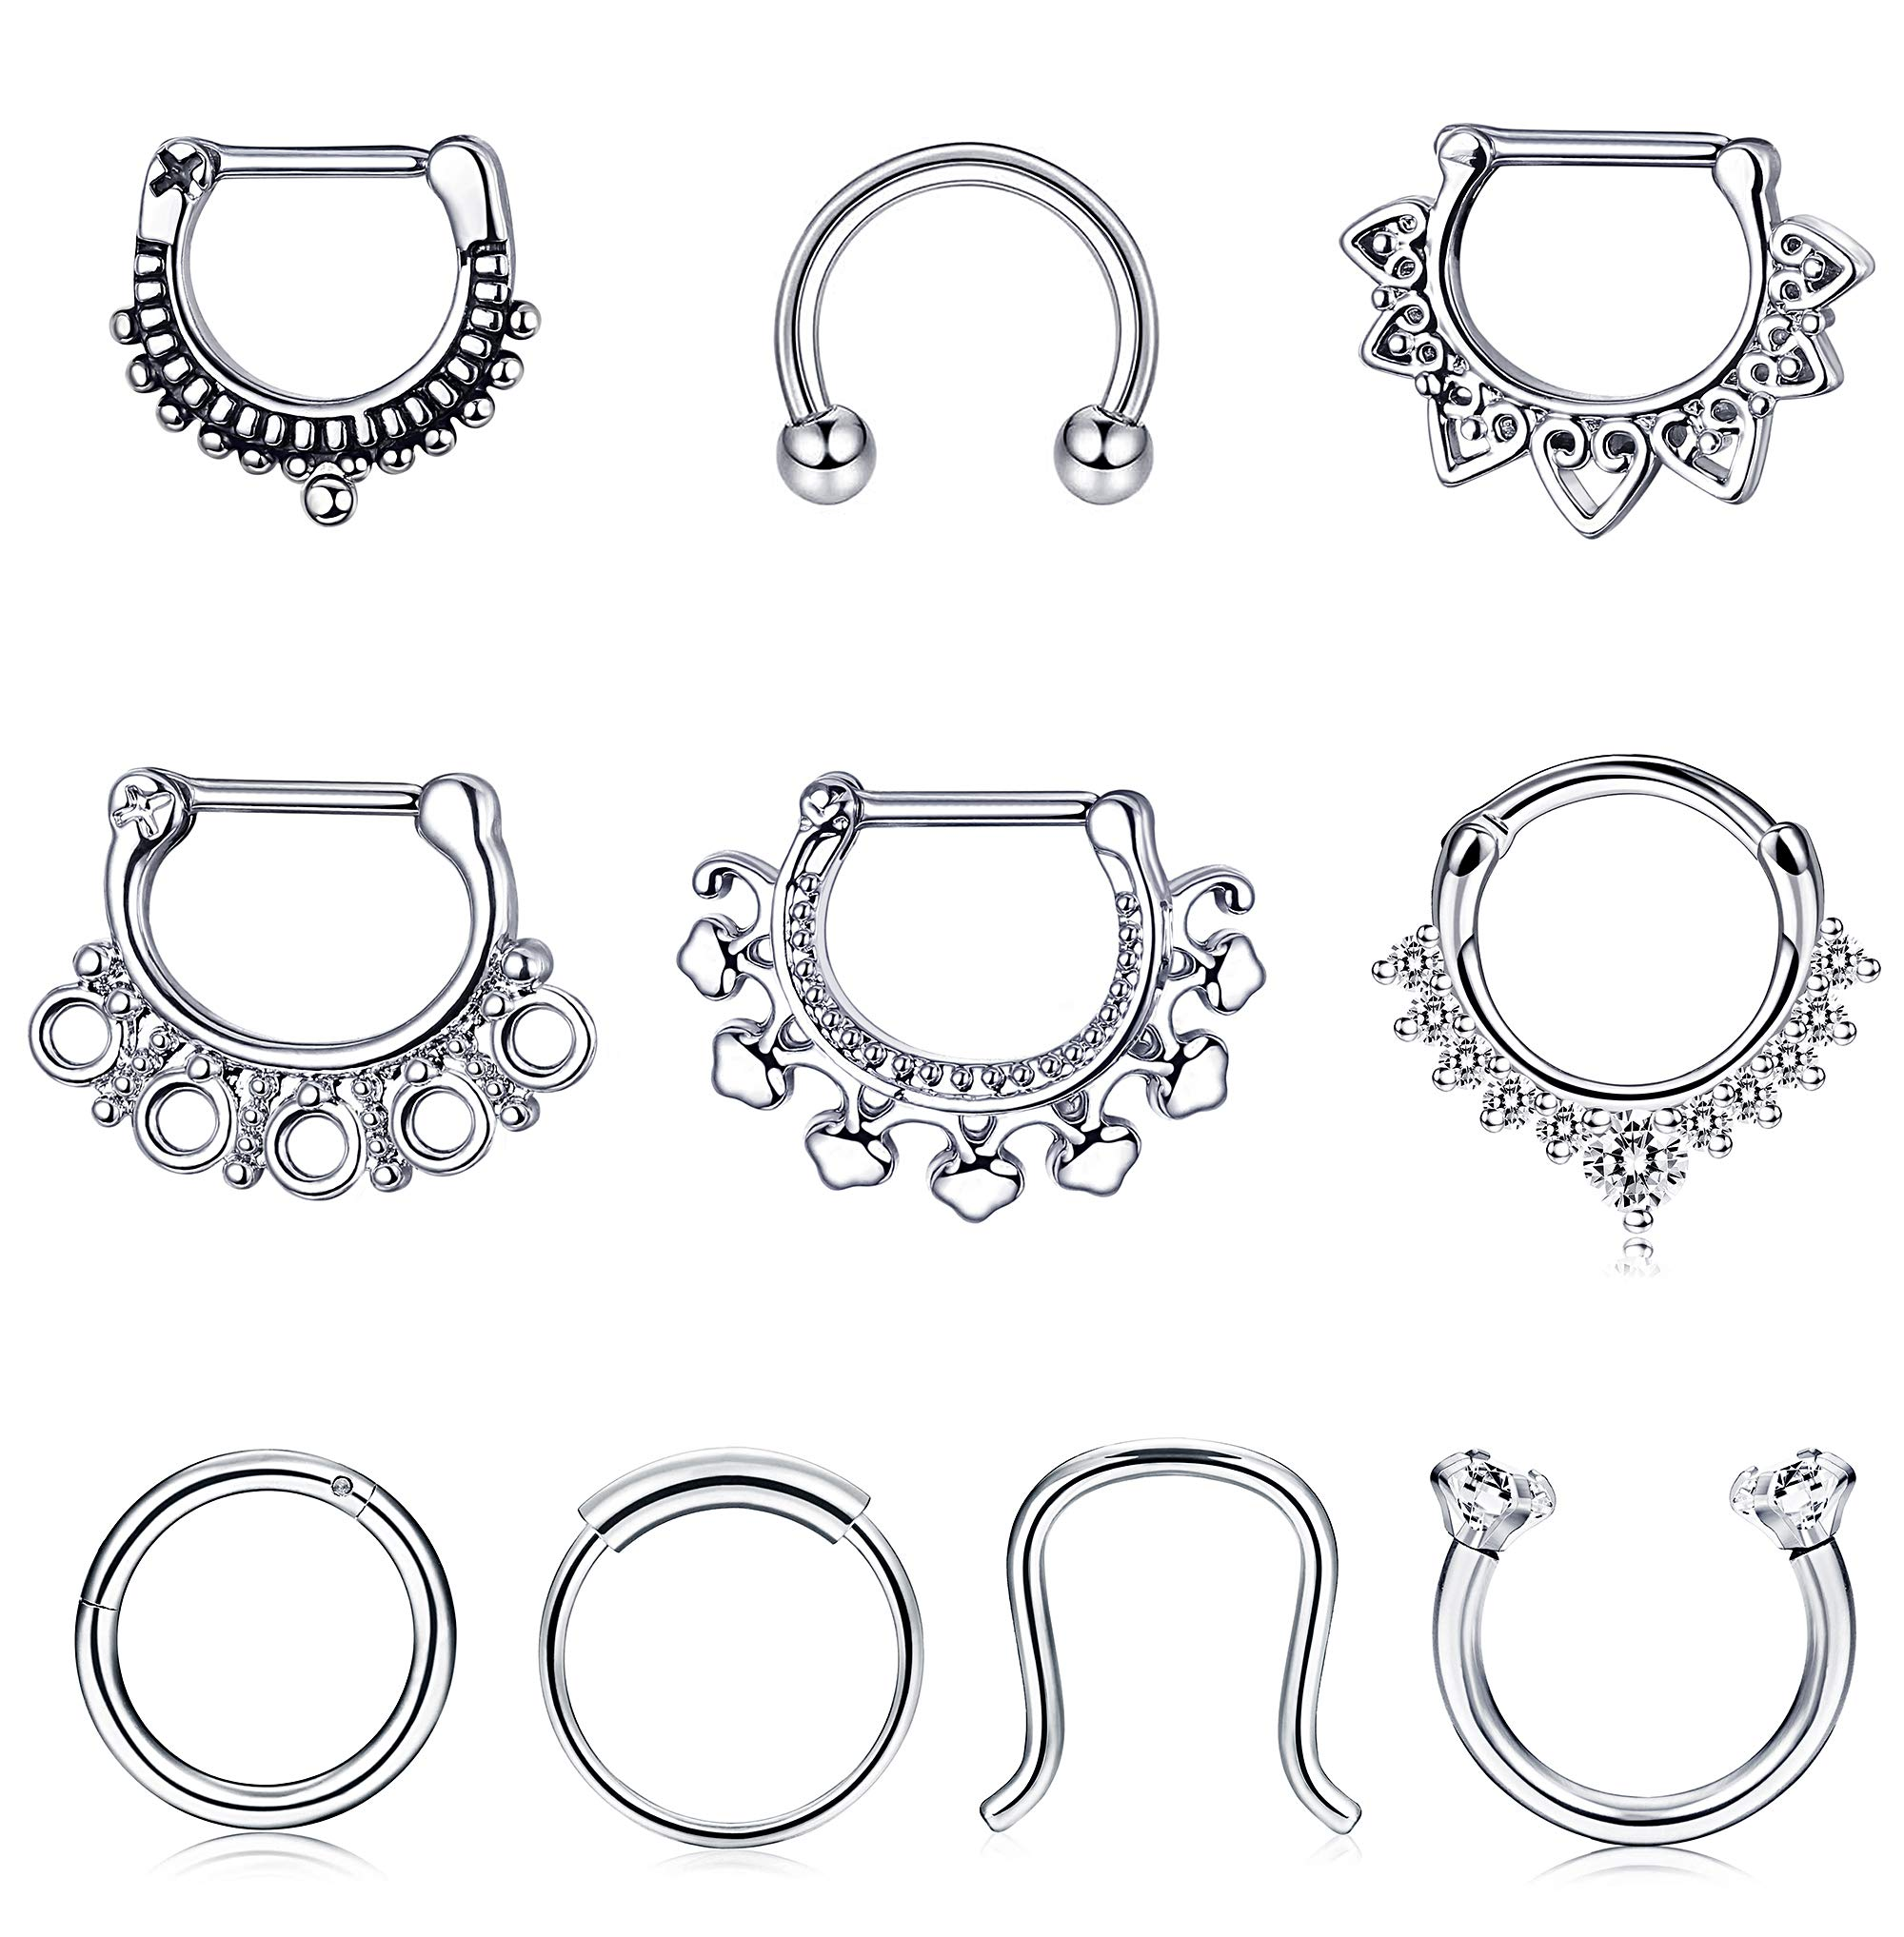 Jstyle 10Pcs 16G Stainless Steel Septum Clicker Nose Rings Hoop Horseshoe Cartilage Tragus Septum Ring Body Piercing Jewelry by Jstyle